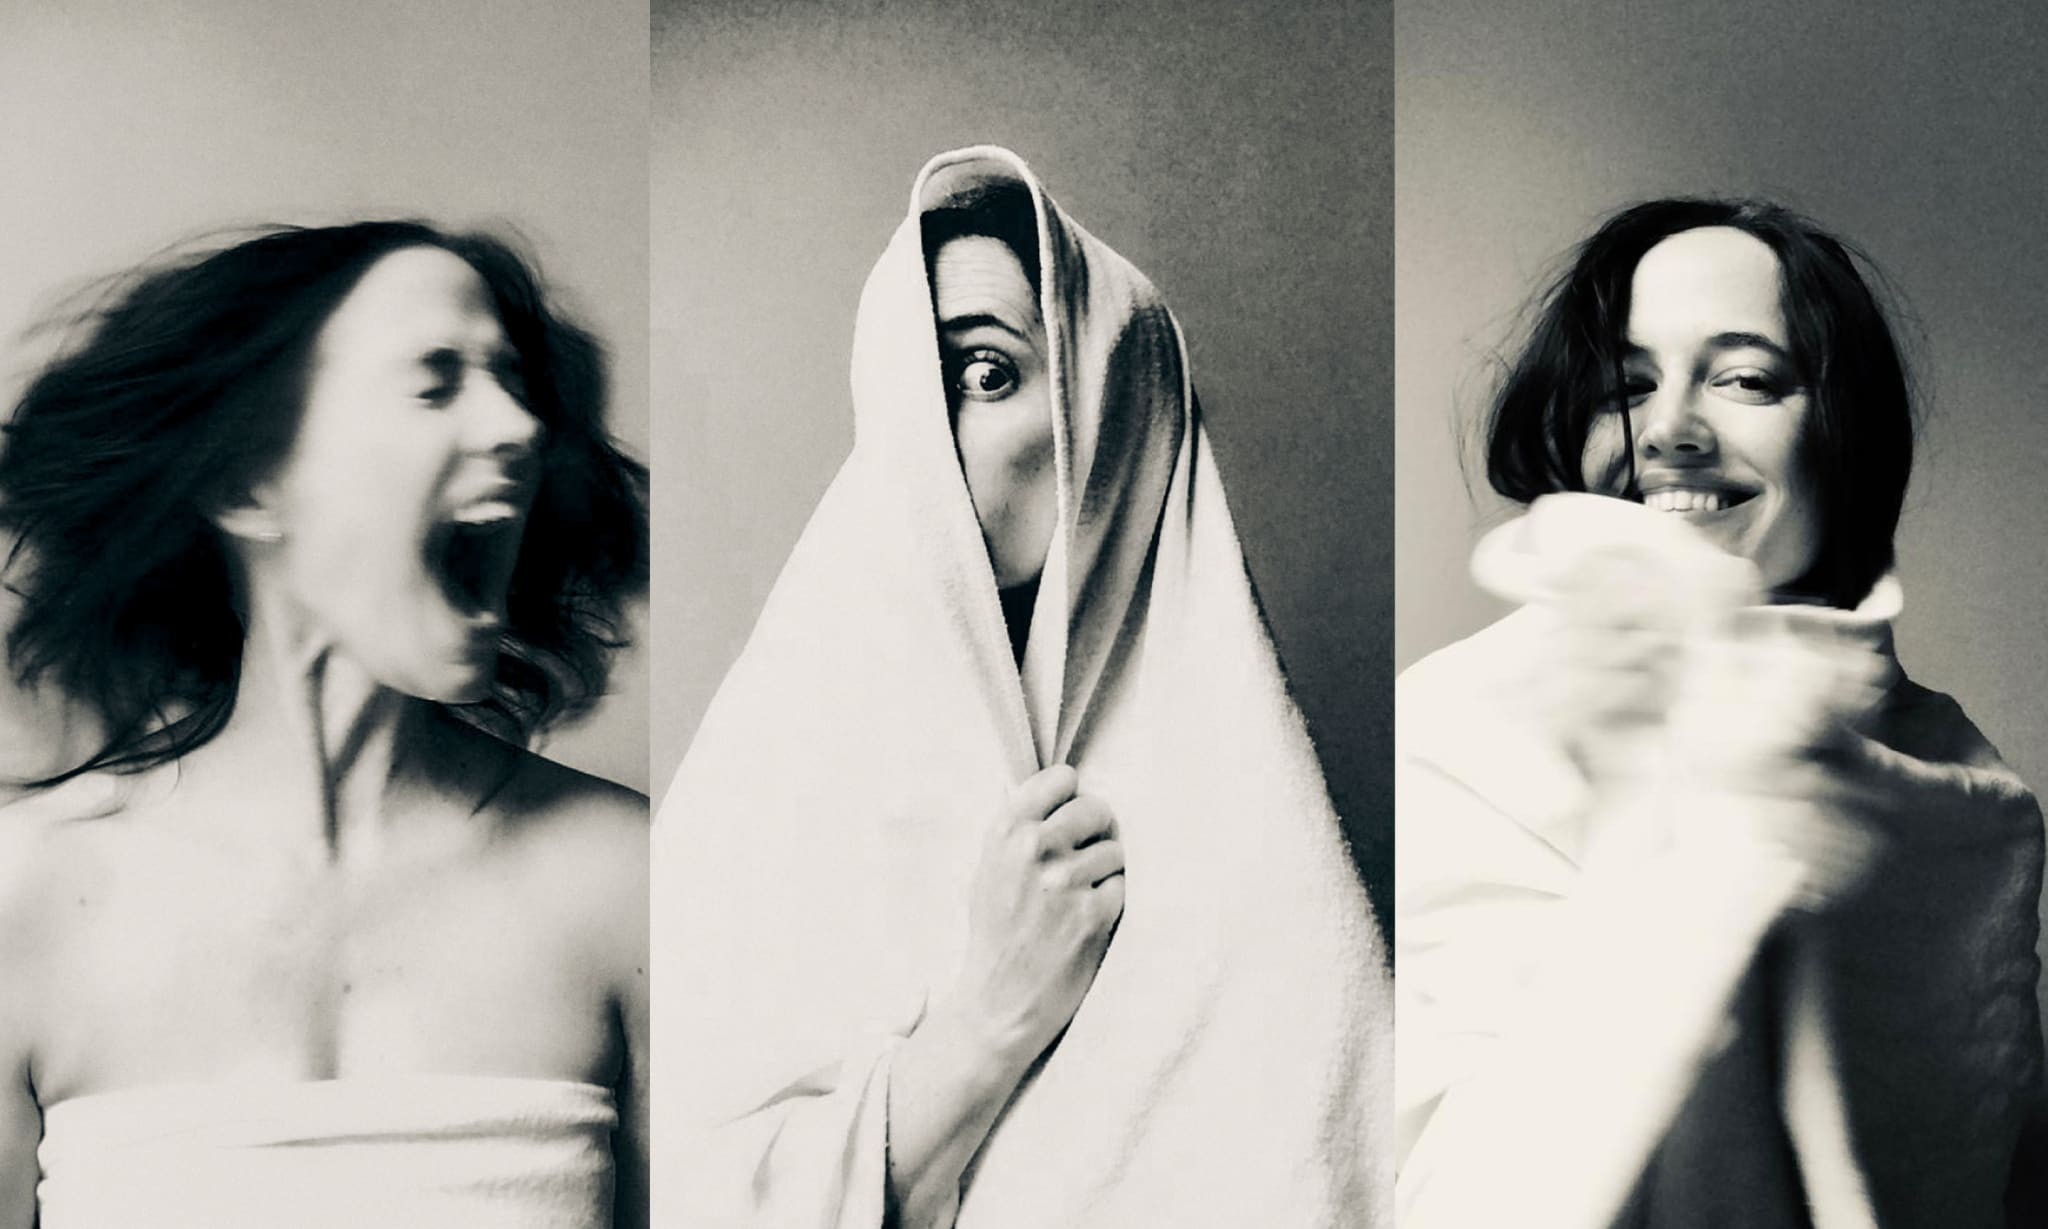 A collage of the same woman screaming, hiding and smiling behind a white blanket.